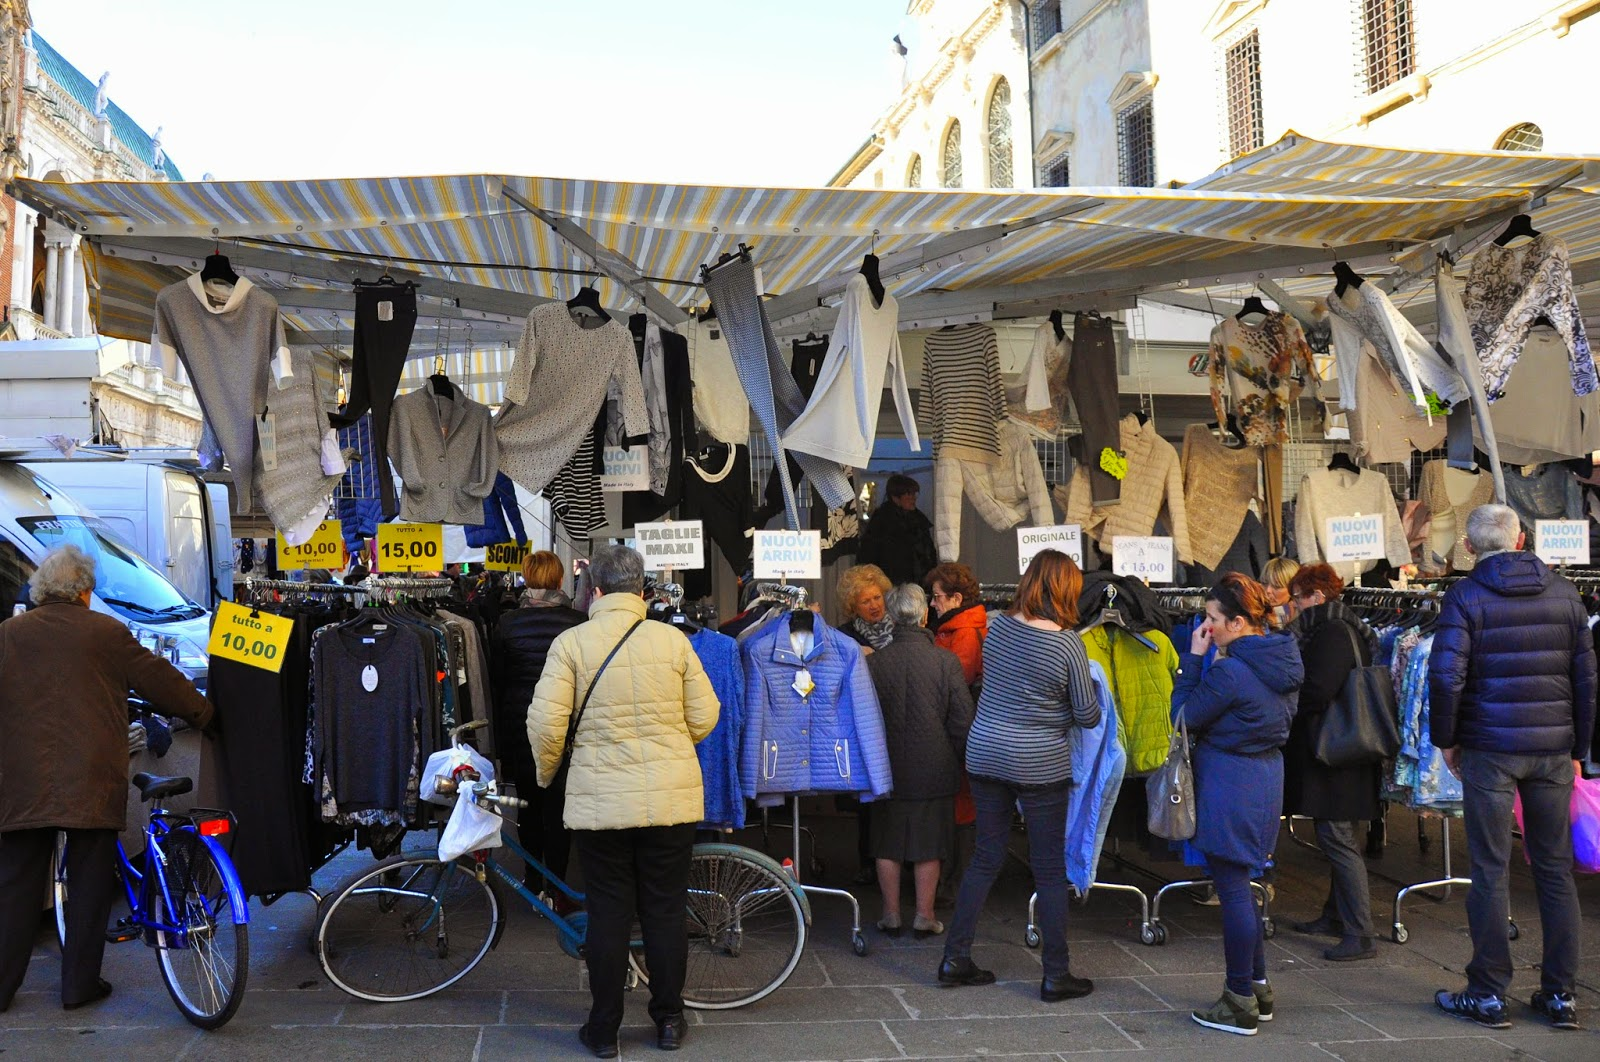 Clohes hanging underneath a stall's marquee at the Thursday market in Vicenza, Italy